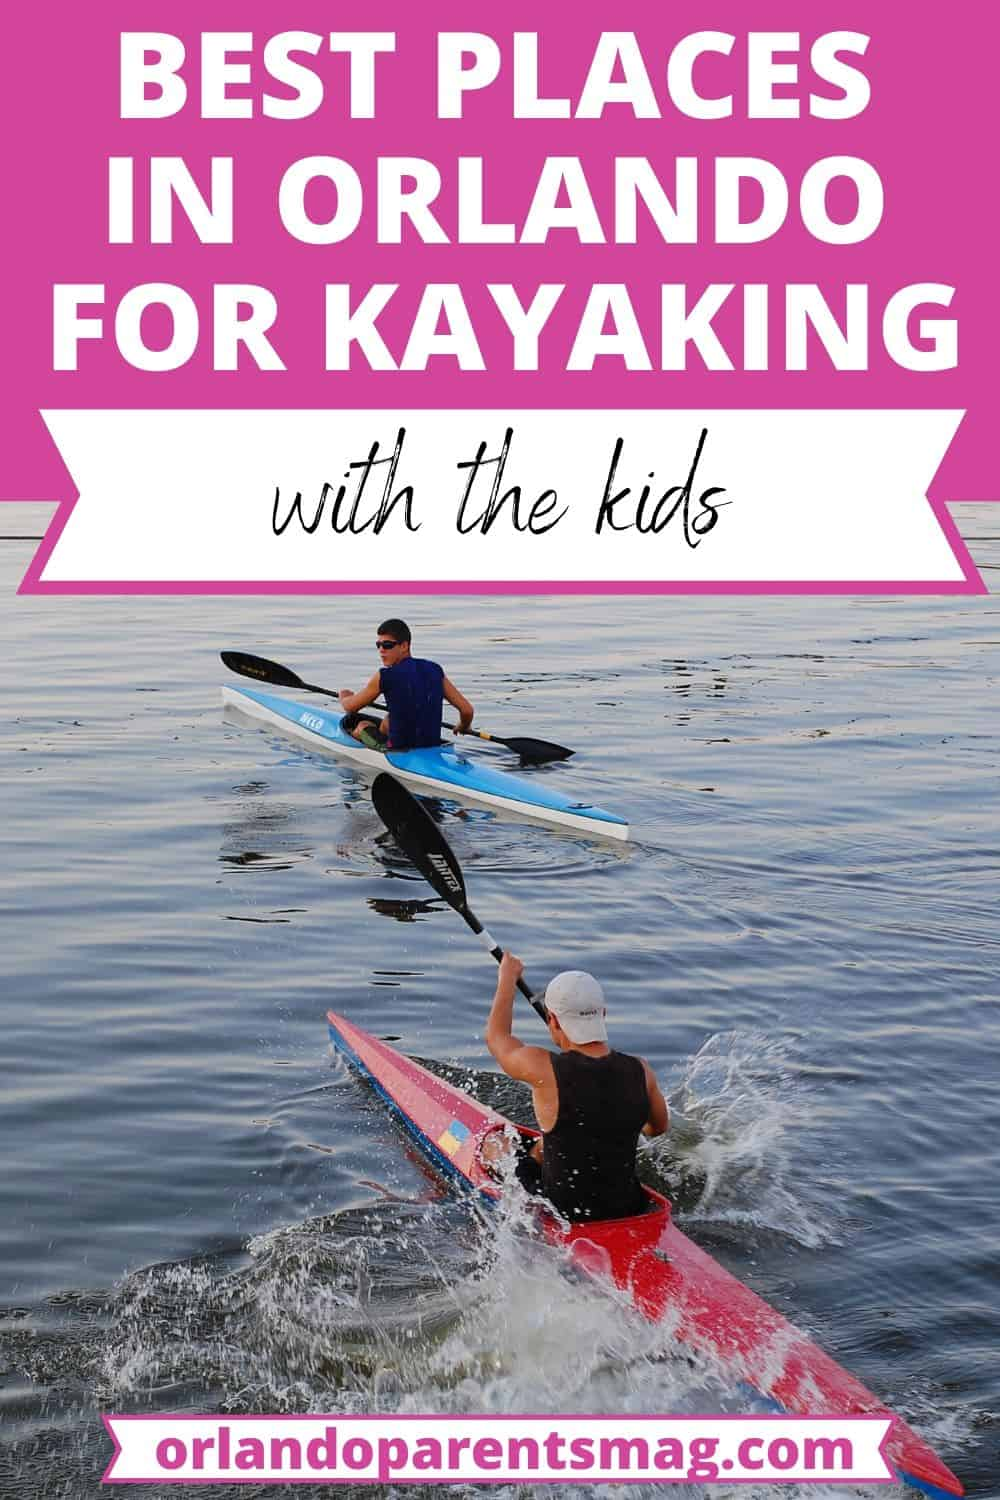 WHERE TO GO KAYAKING IN ORLANDO